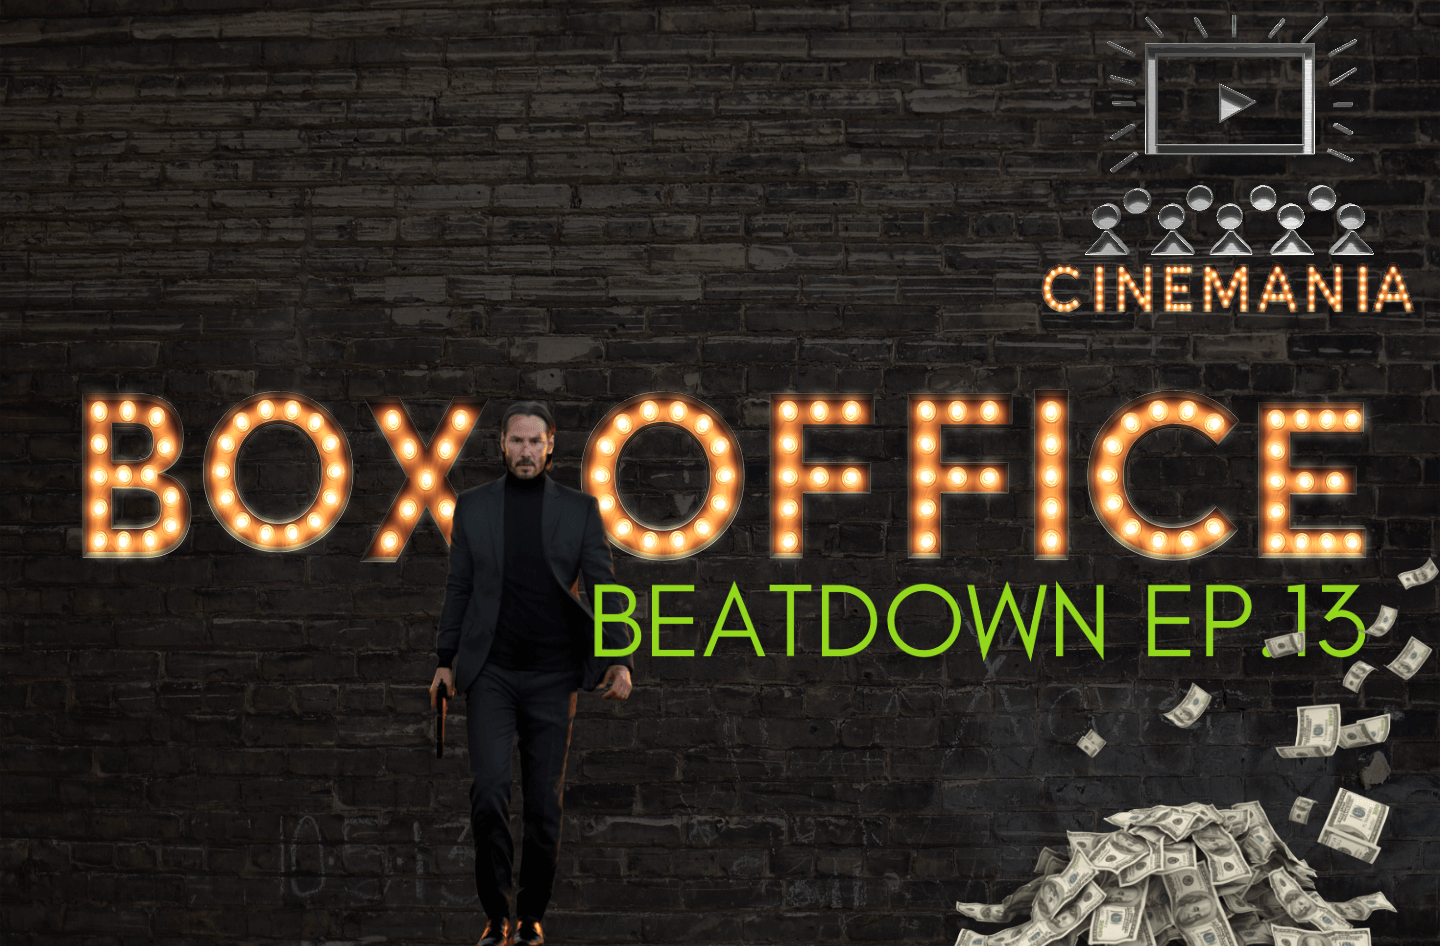 """Box Office Beatdown Ep.13 """"John Wick Takes Out The Avengers for the #1 Spot!"""""""